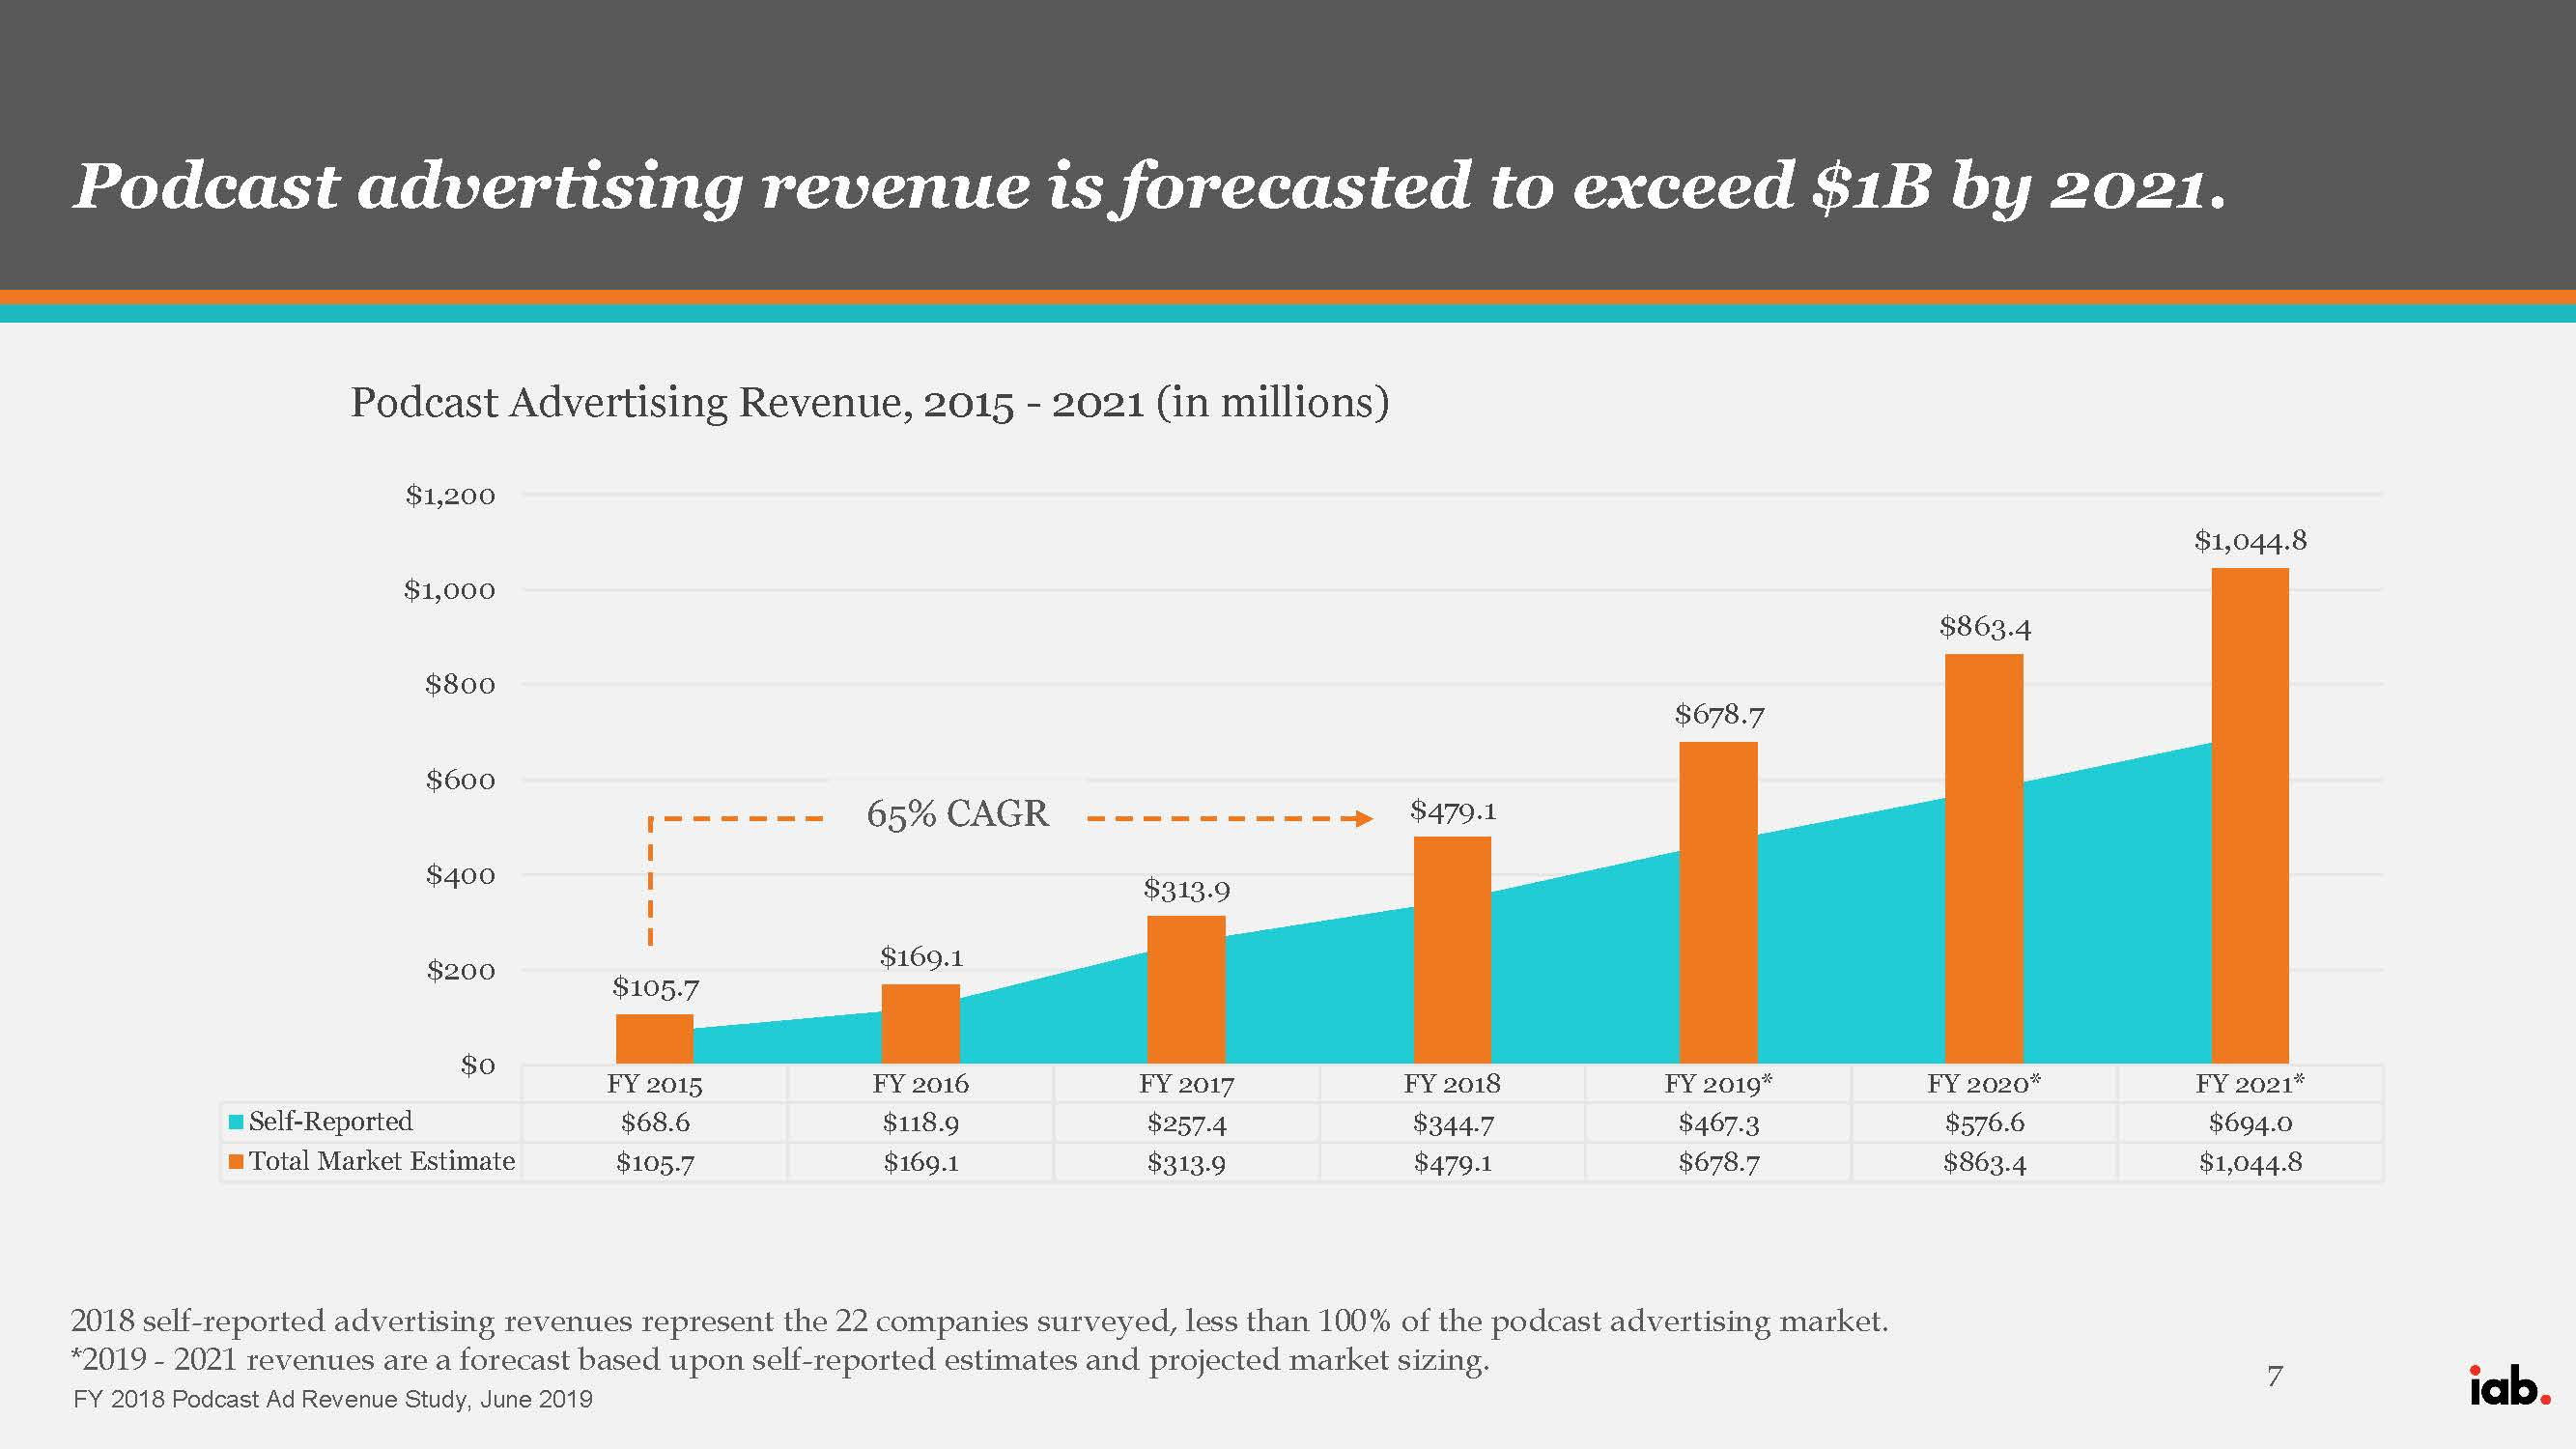 Podcast Advertising Revenue, 2015 - 2021 chart